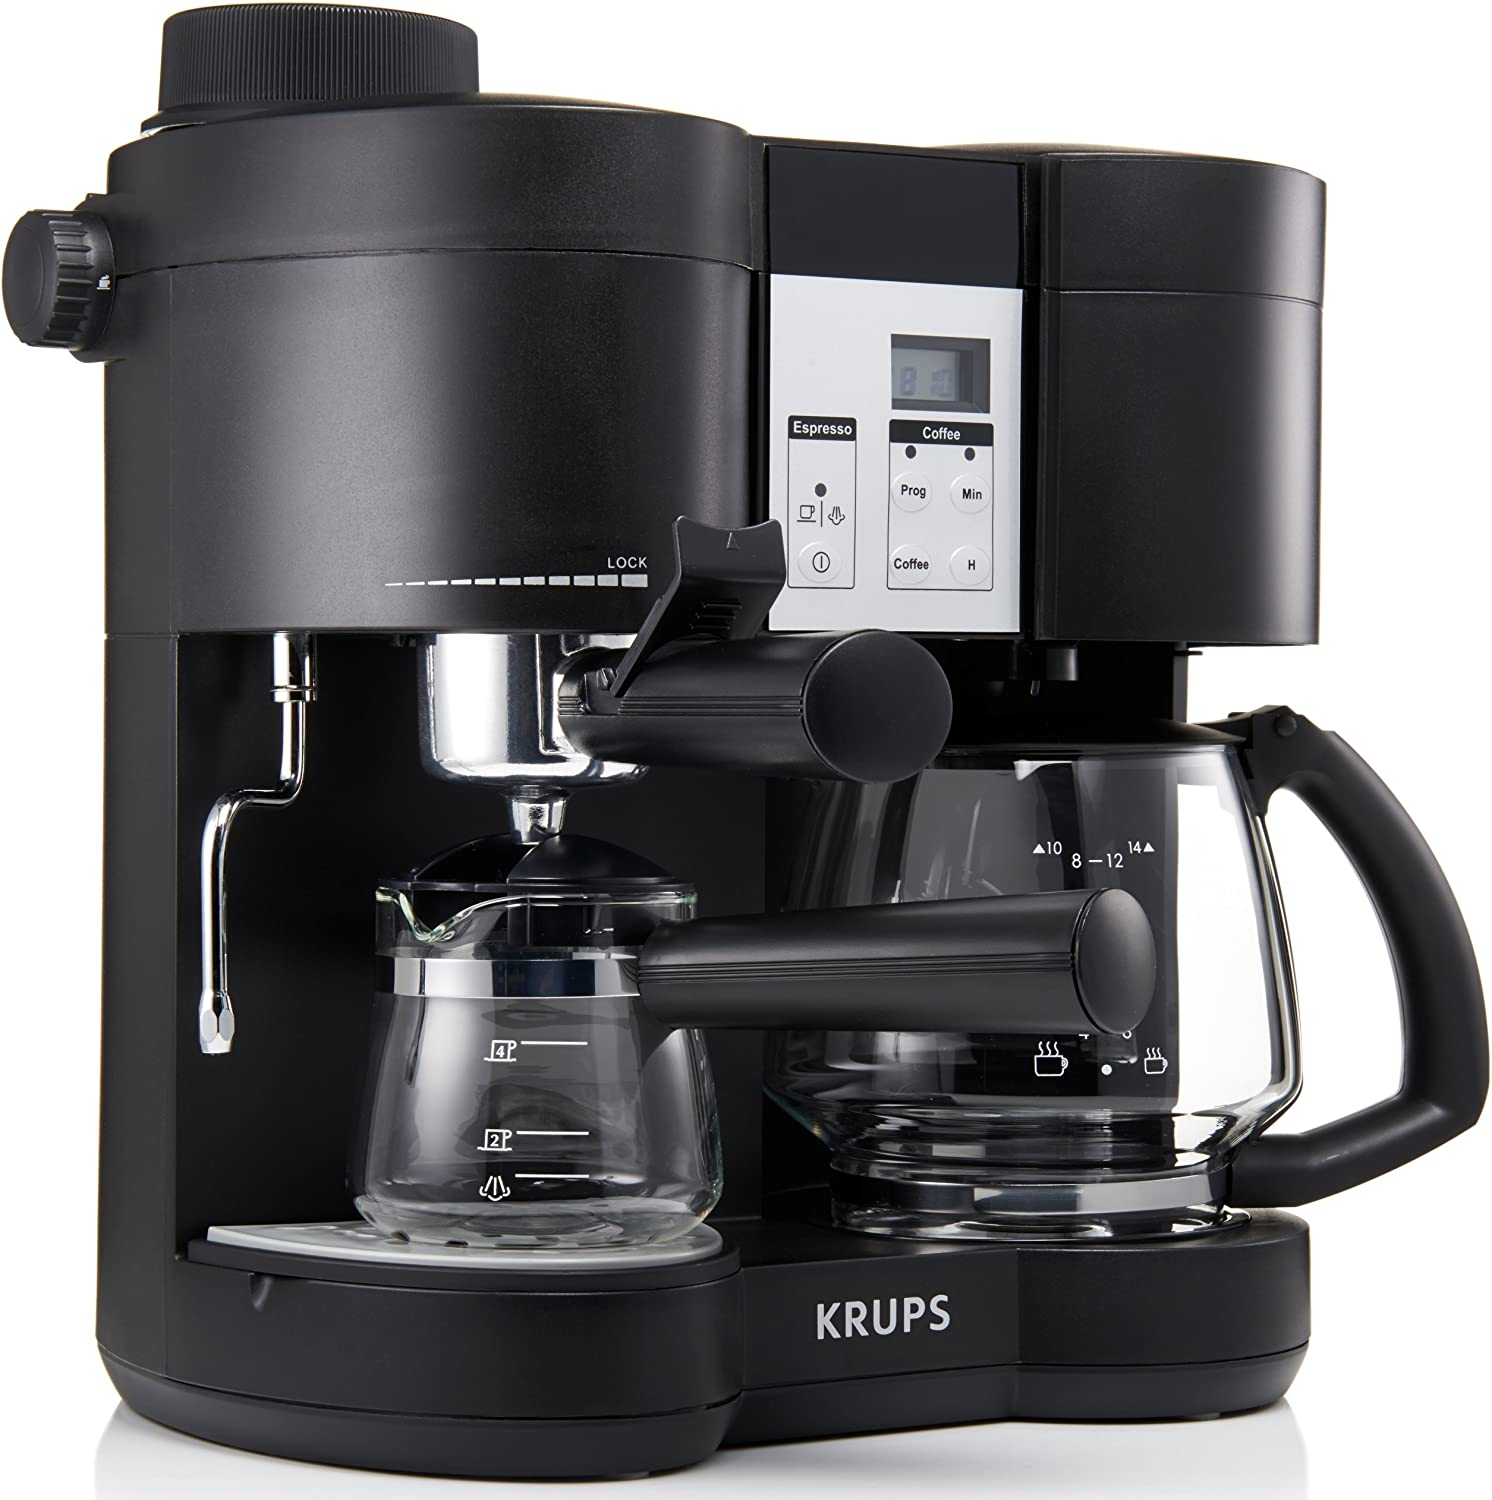 Amazon.com: Krups XP160050 Coffee Maker and Stainless ...